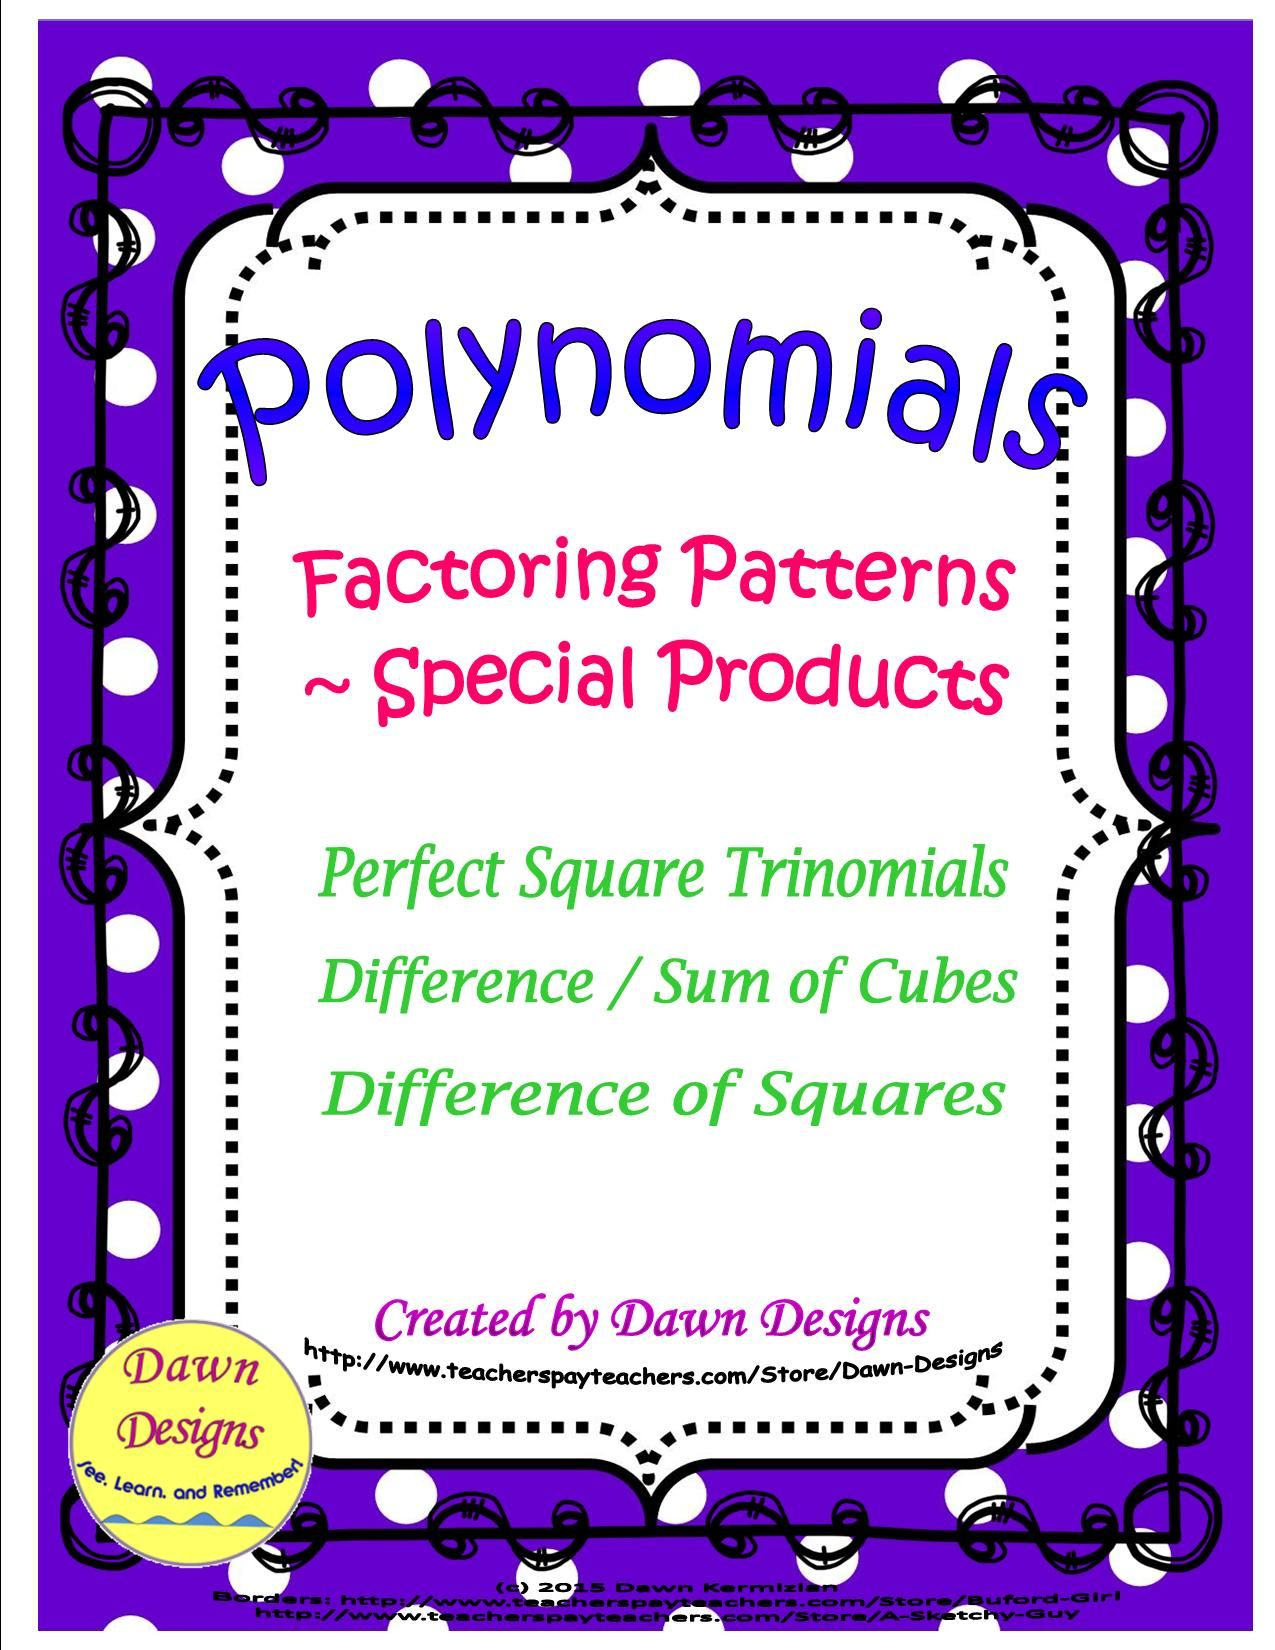 Polynomials Factoring Patterns